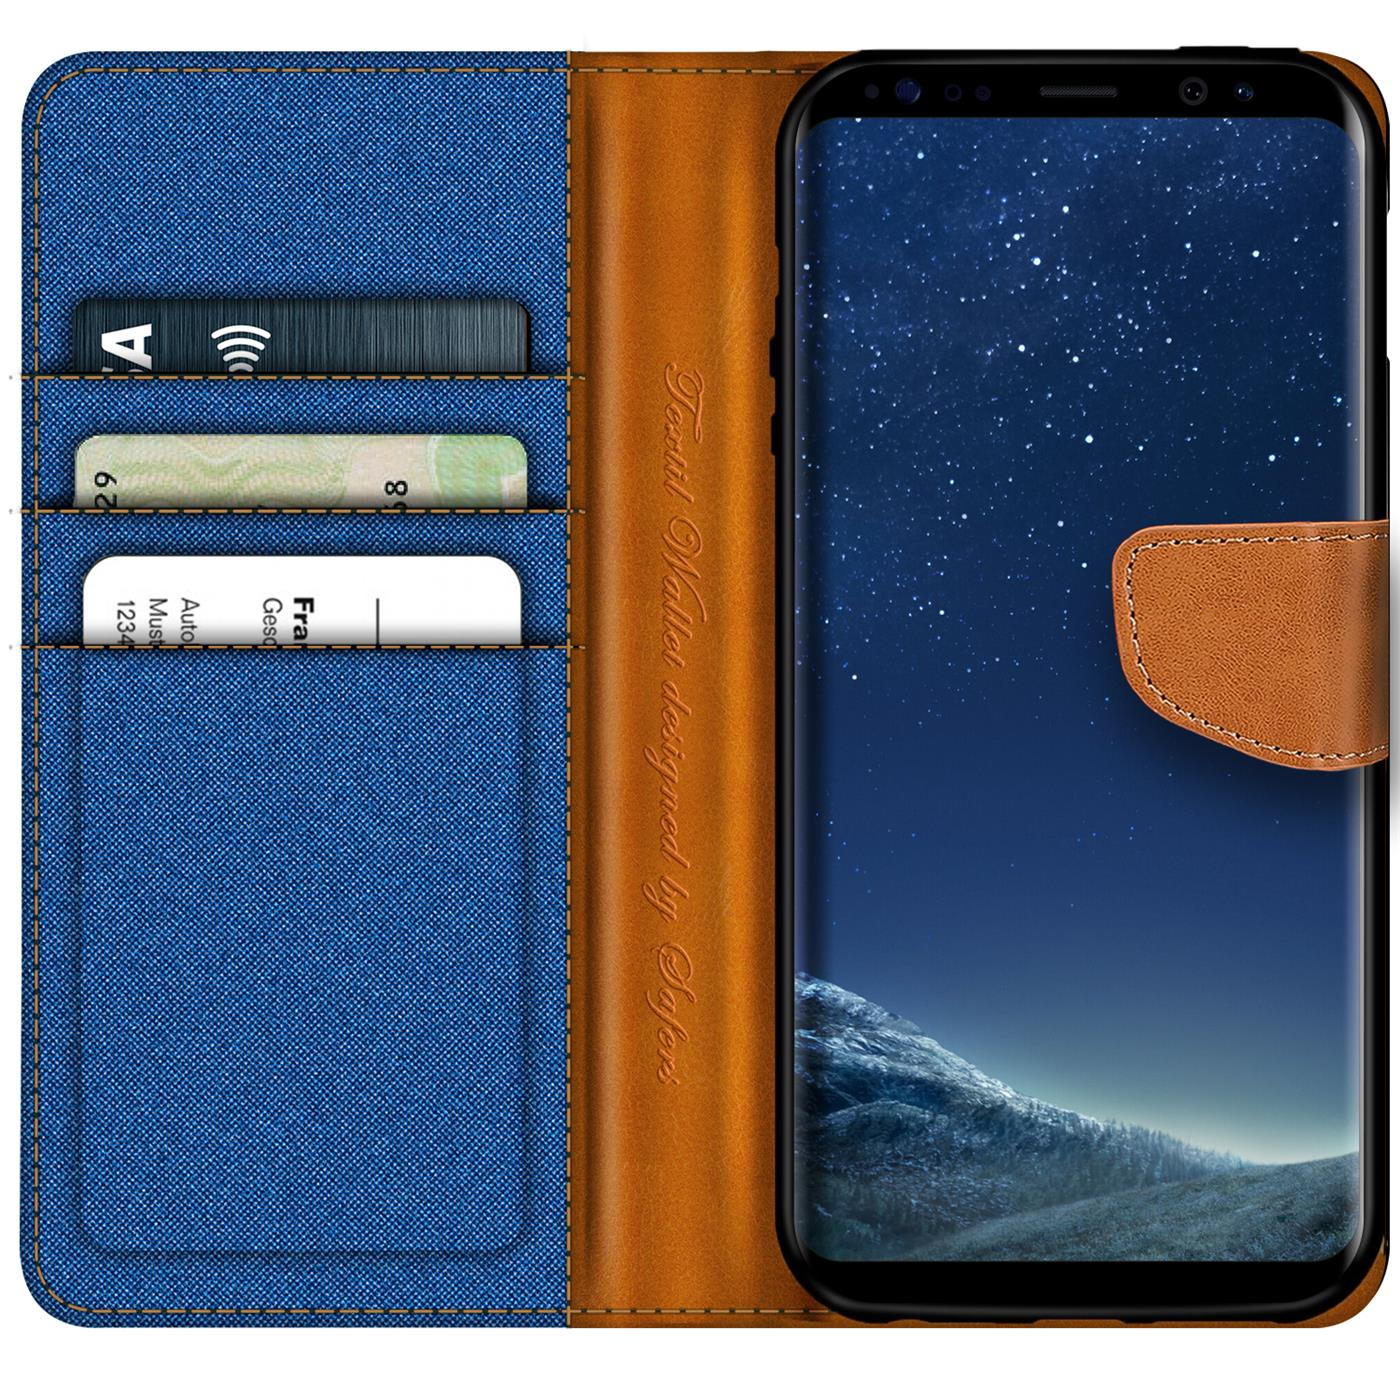 Samsung-Galaxy-S8-Plus-Phone-PU-Leather-Magnetic-Flip-Case-Wallet-Denim-Cover thumbnail 23